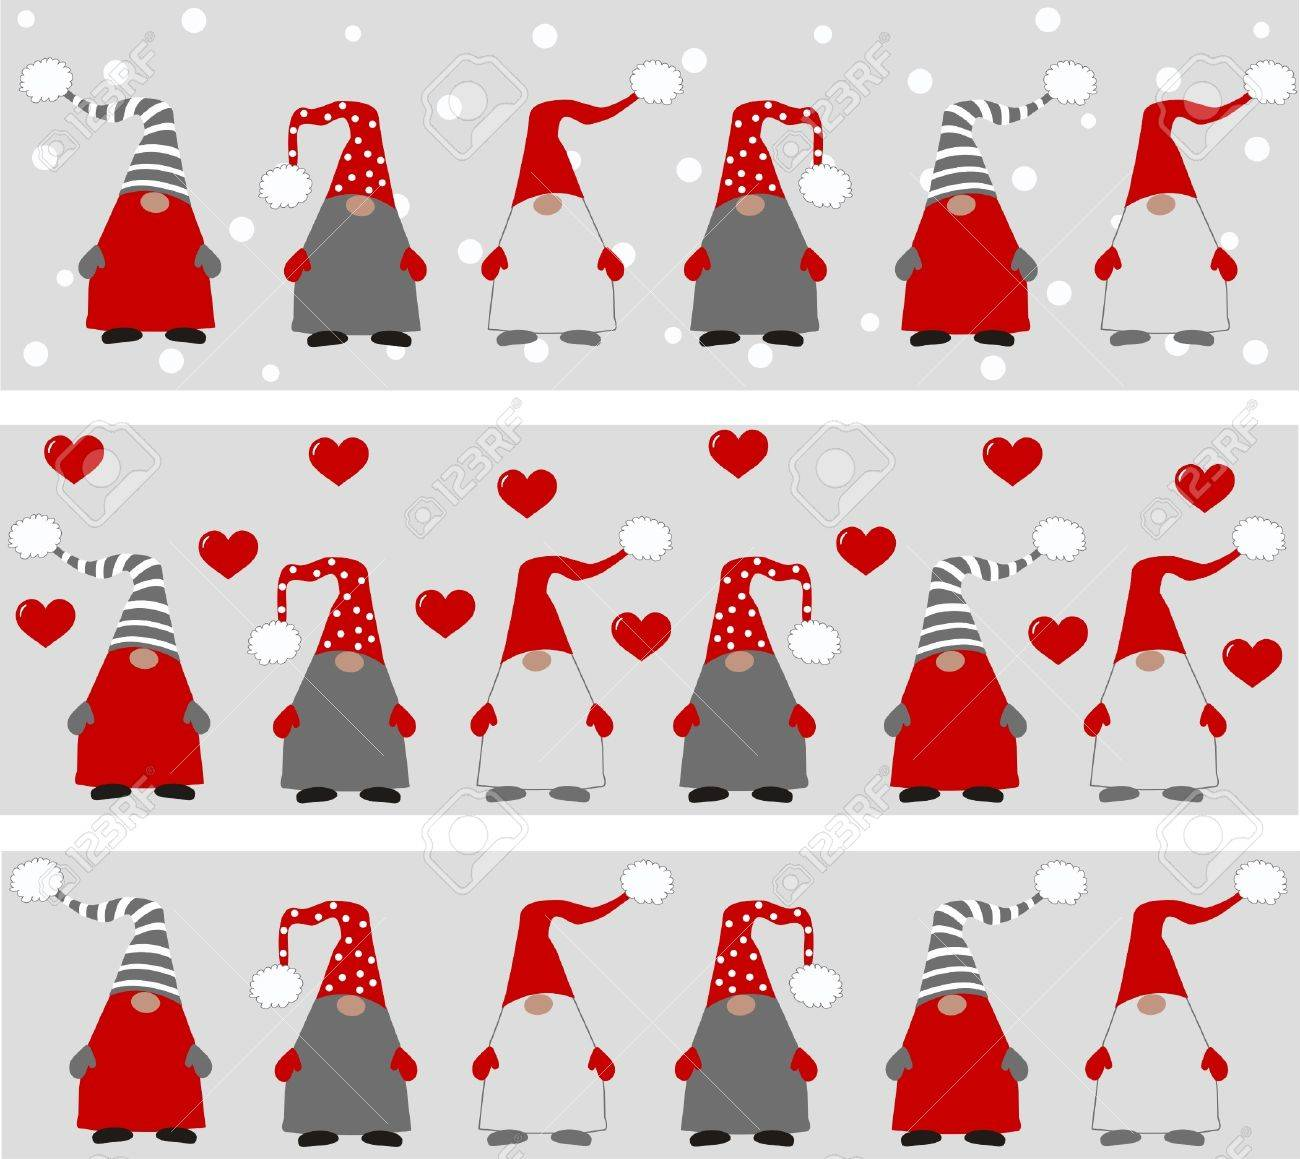 Merry Christmas Headers Royalty Free Cliparts, Vectors, And Stock ...